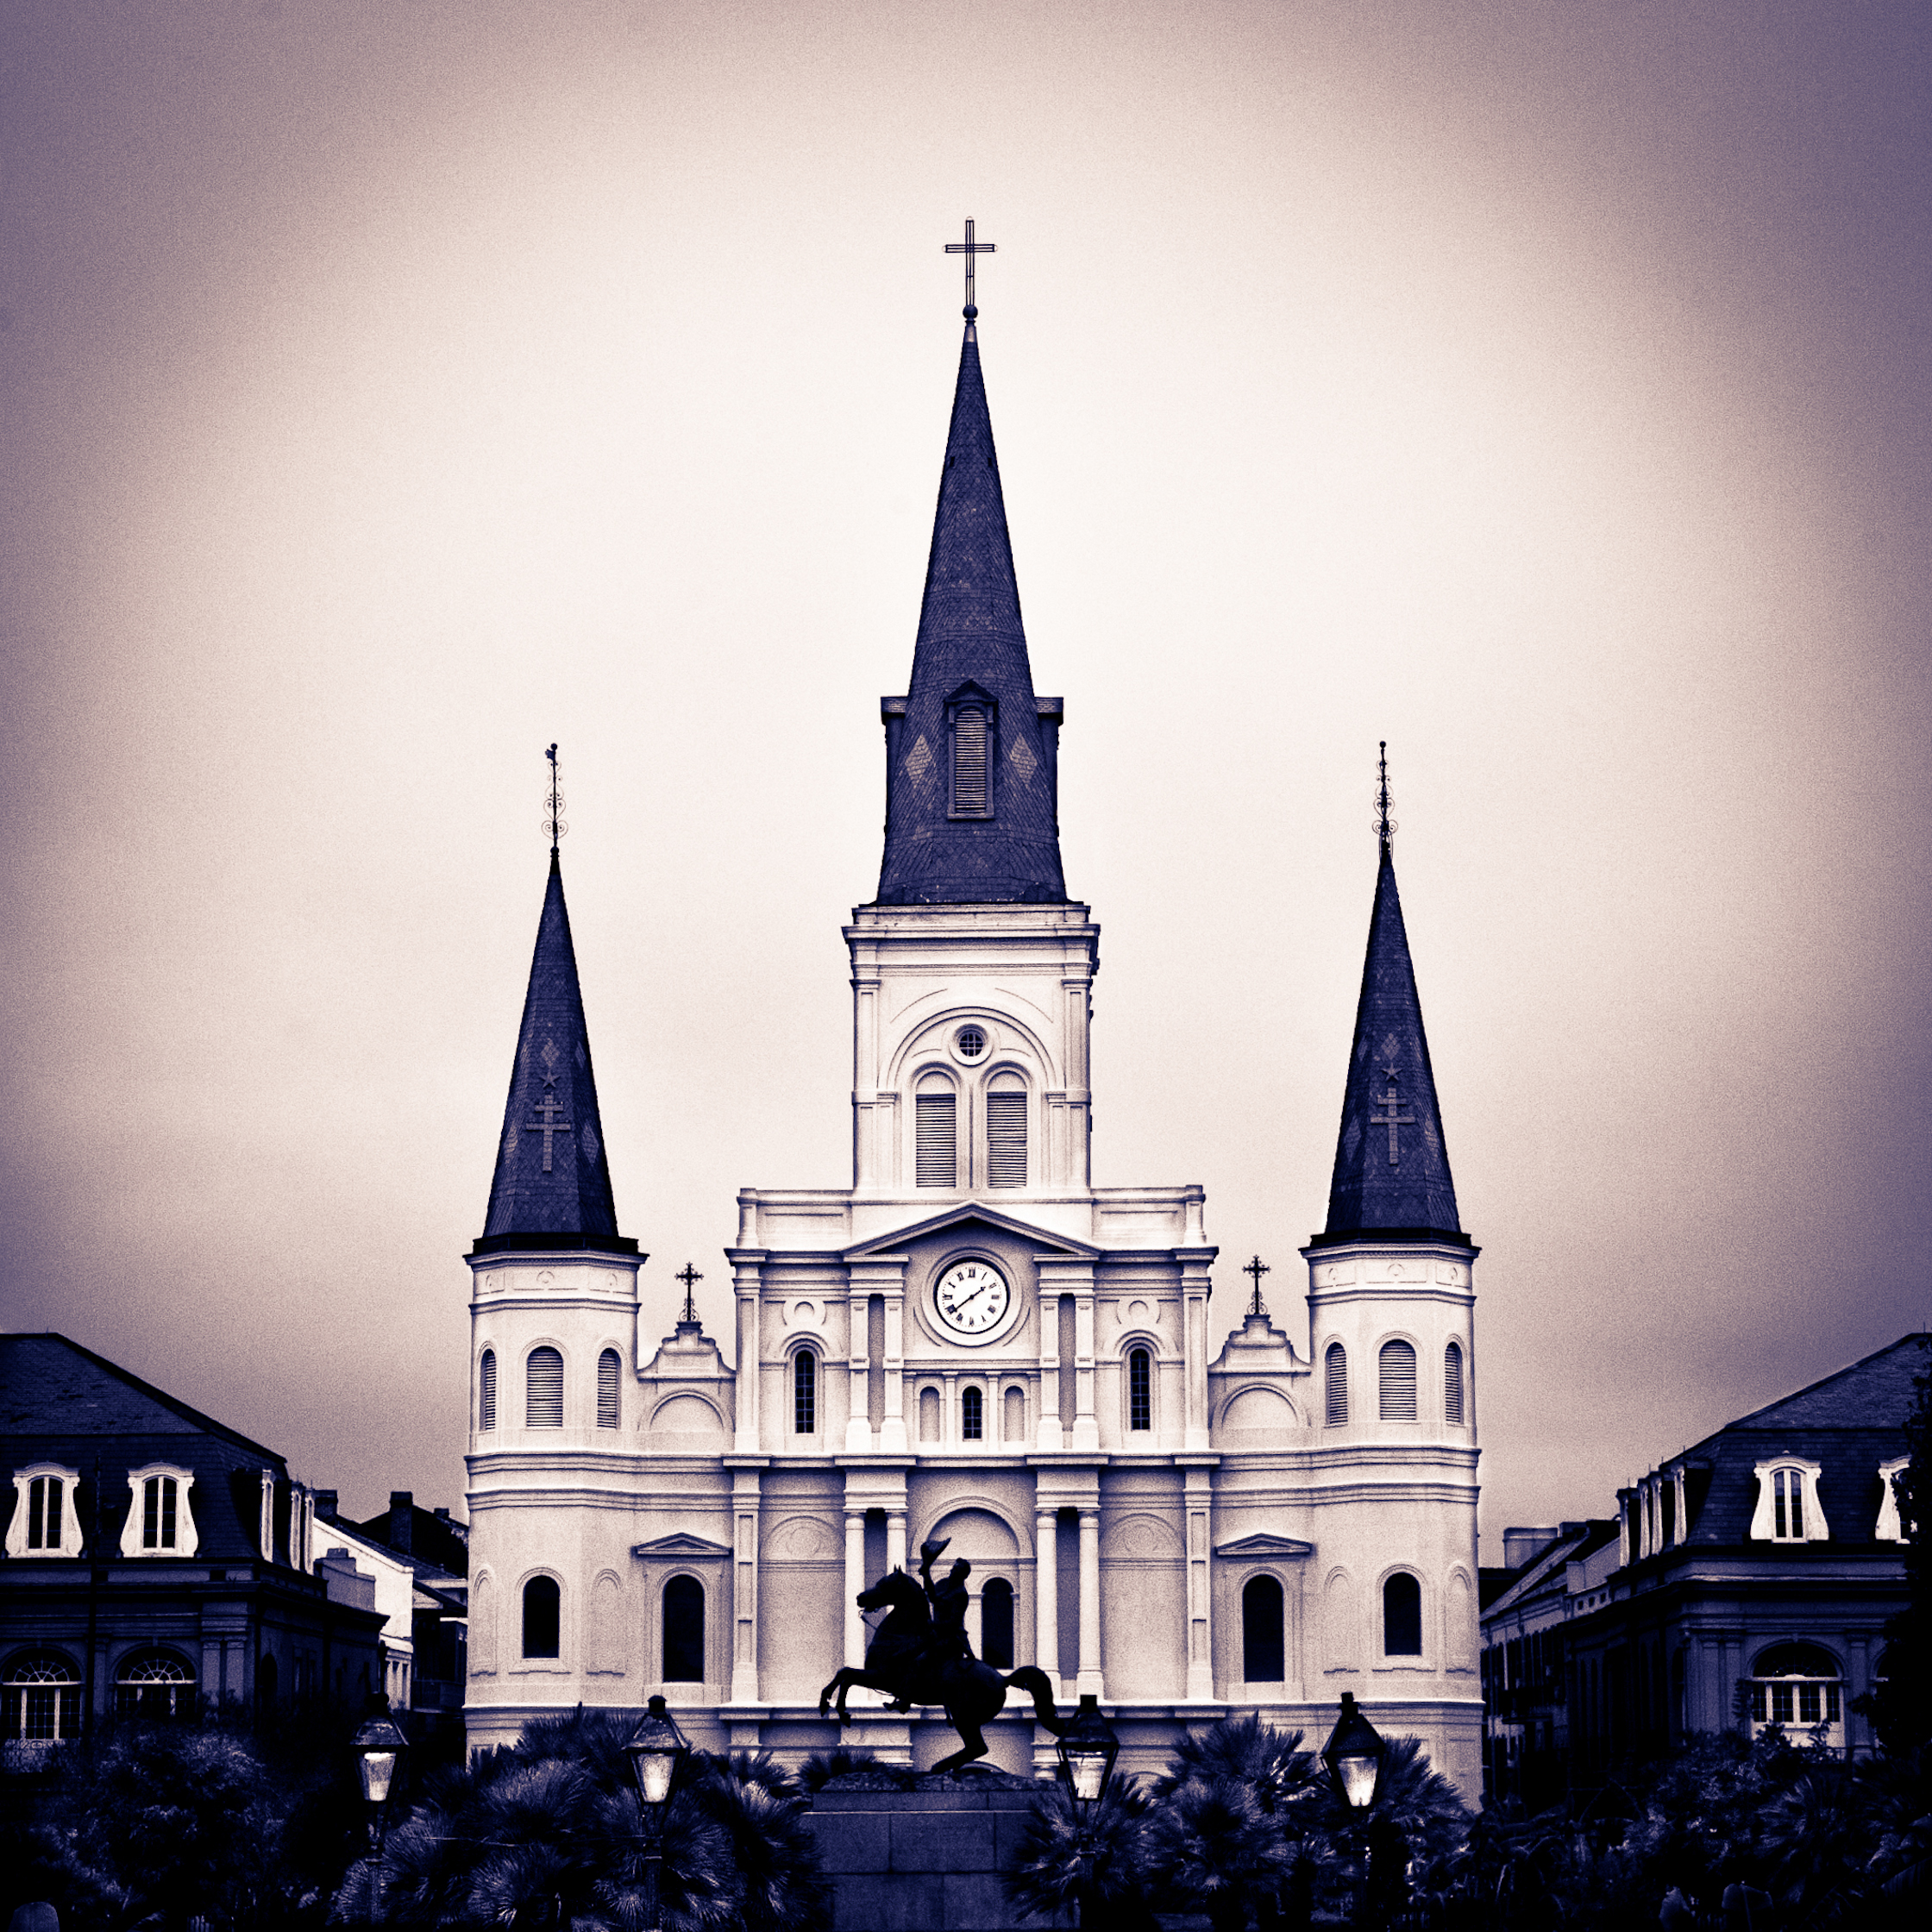 St.LouisCathedral.jpg